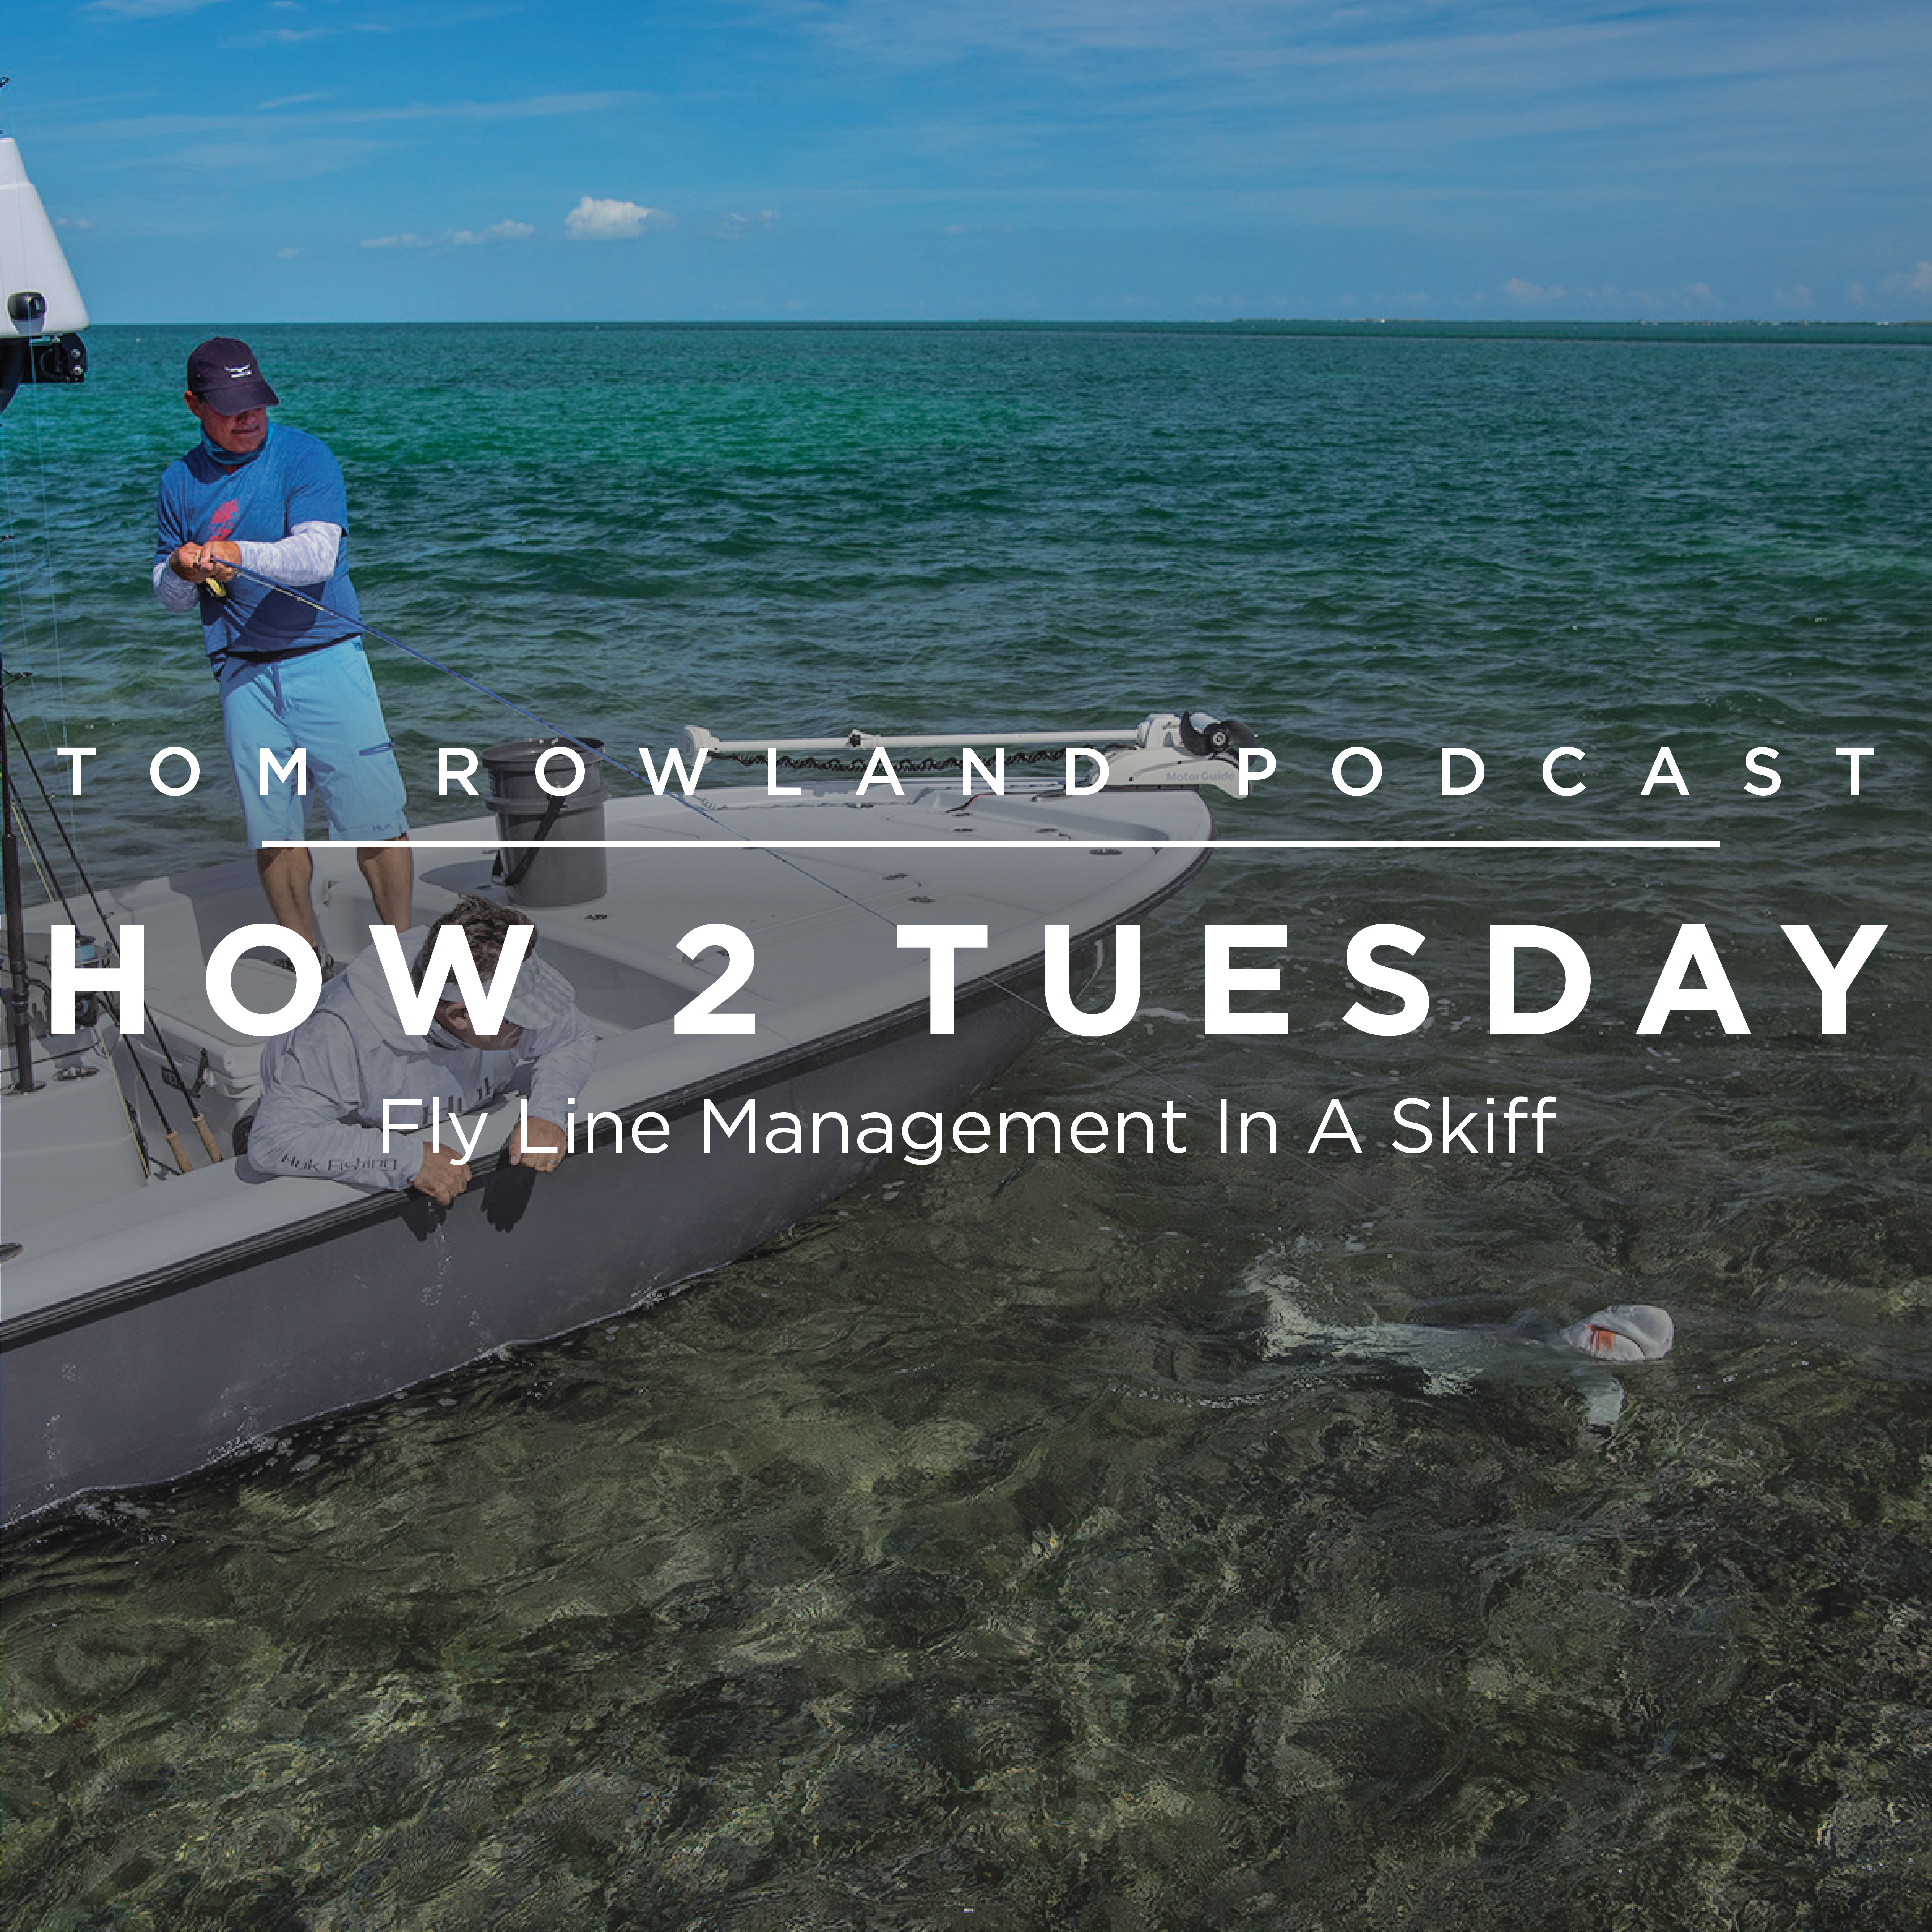 HOW 2 TUESDAY #39 - Fly Line Management In A Skiff